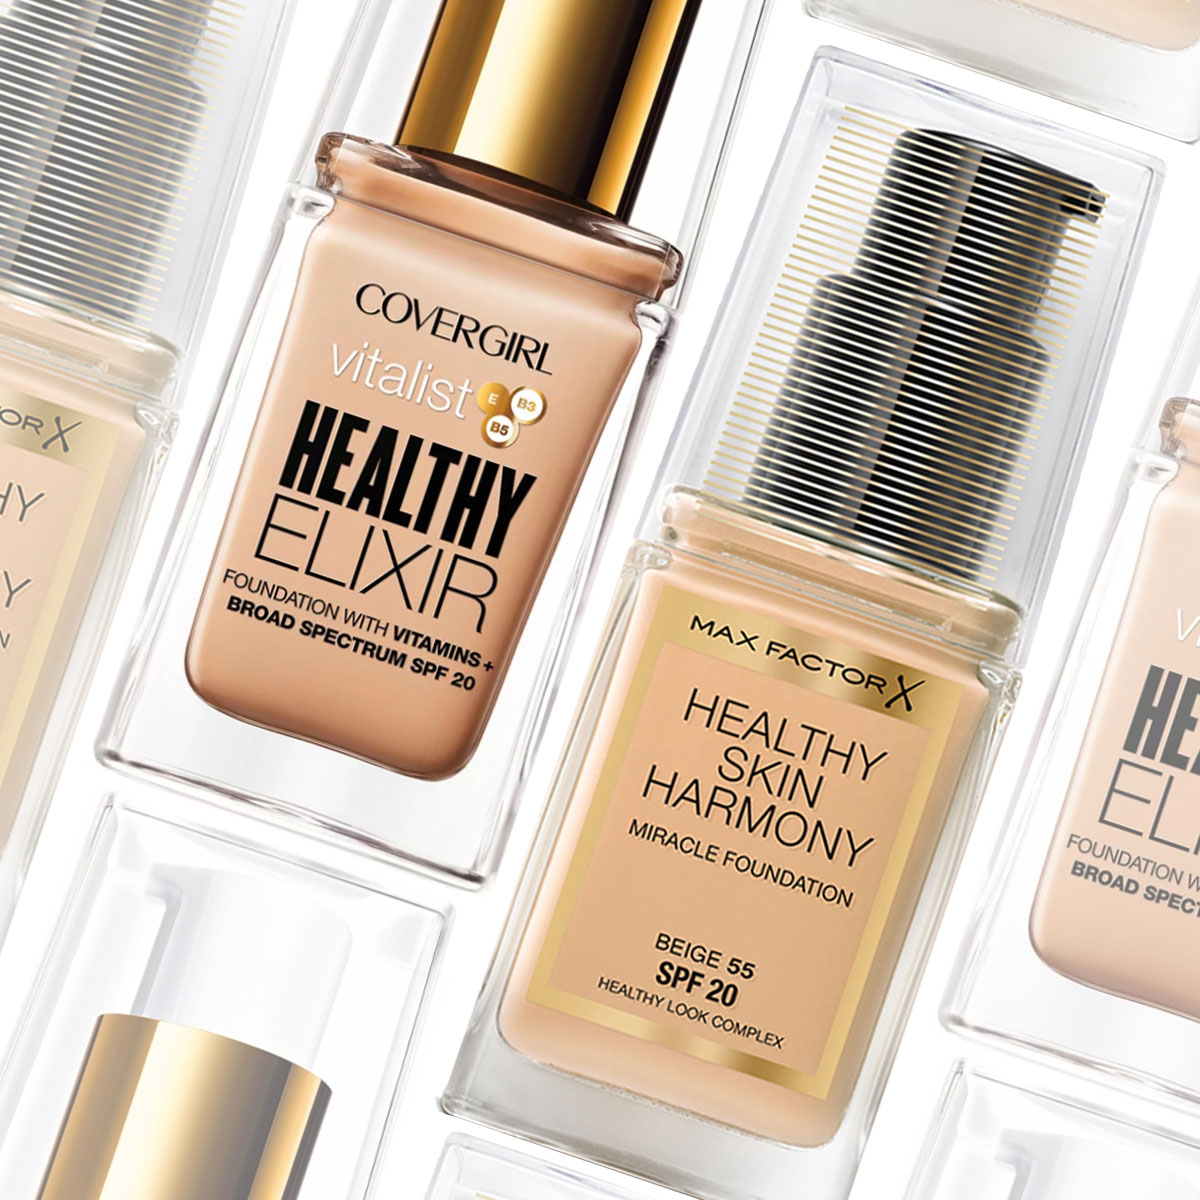 COVERGIRL Healthy Elixir vs MAX FACTOR Vitalist Healthy Elixir Foundation Deutschland